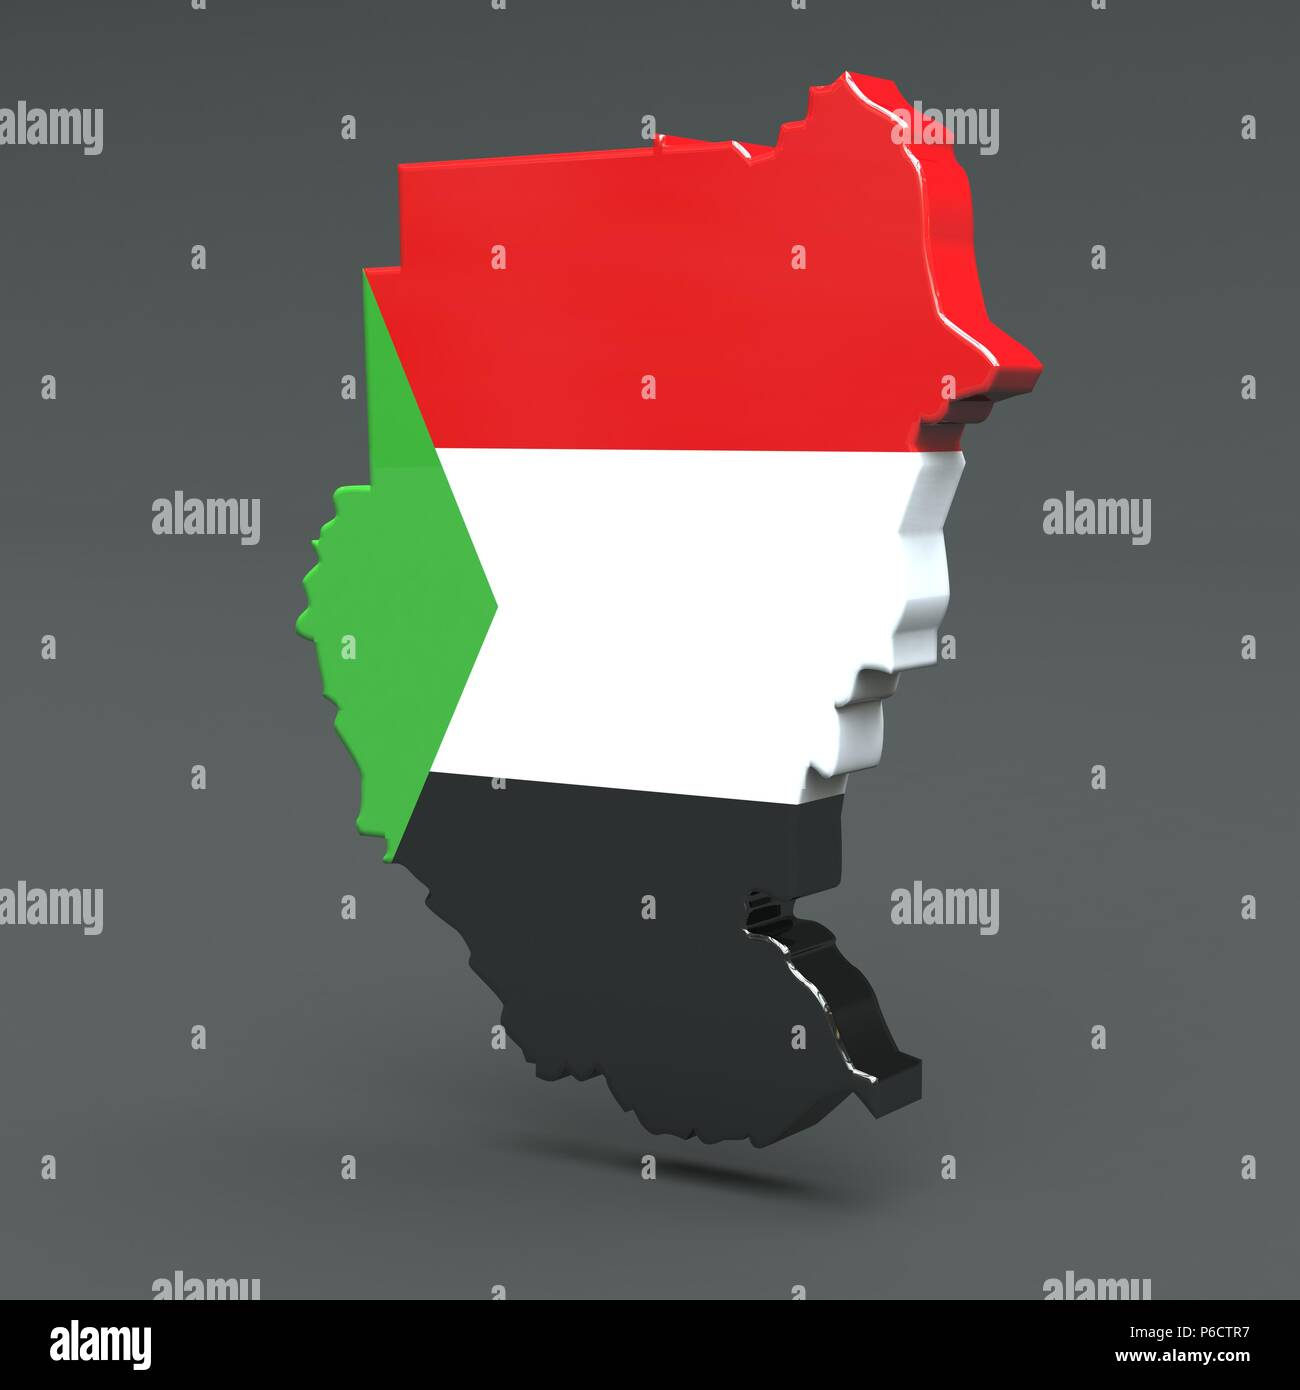 Africa countrie sudan 3D flag maps on a grey background Stock Photo ...